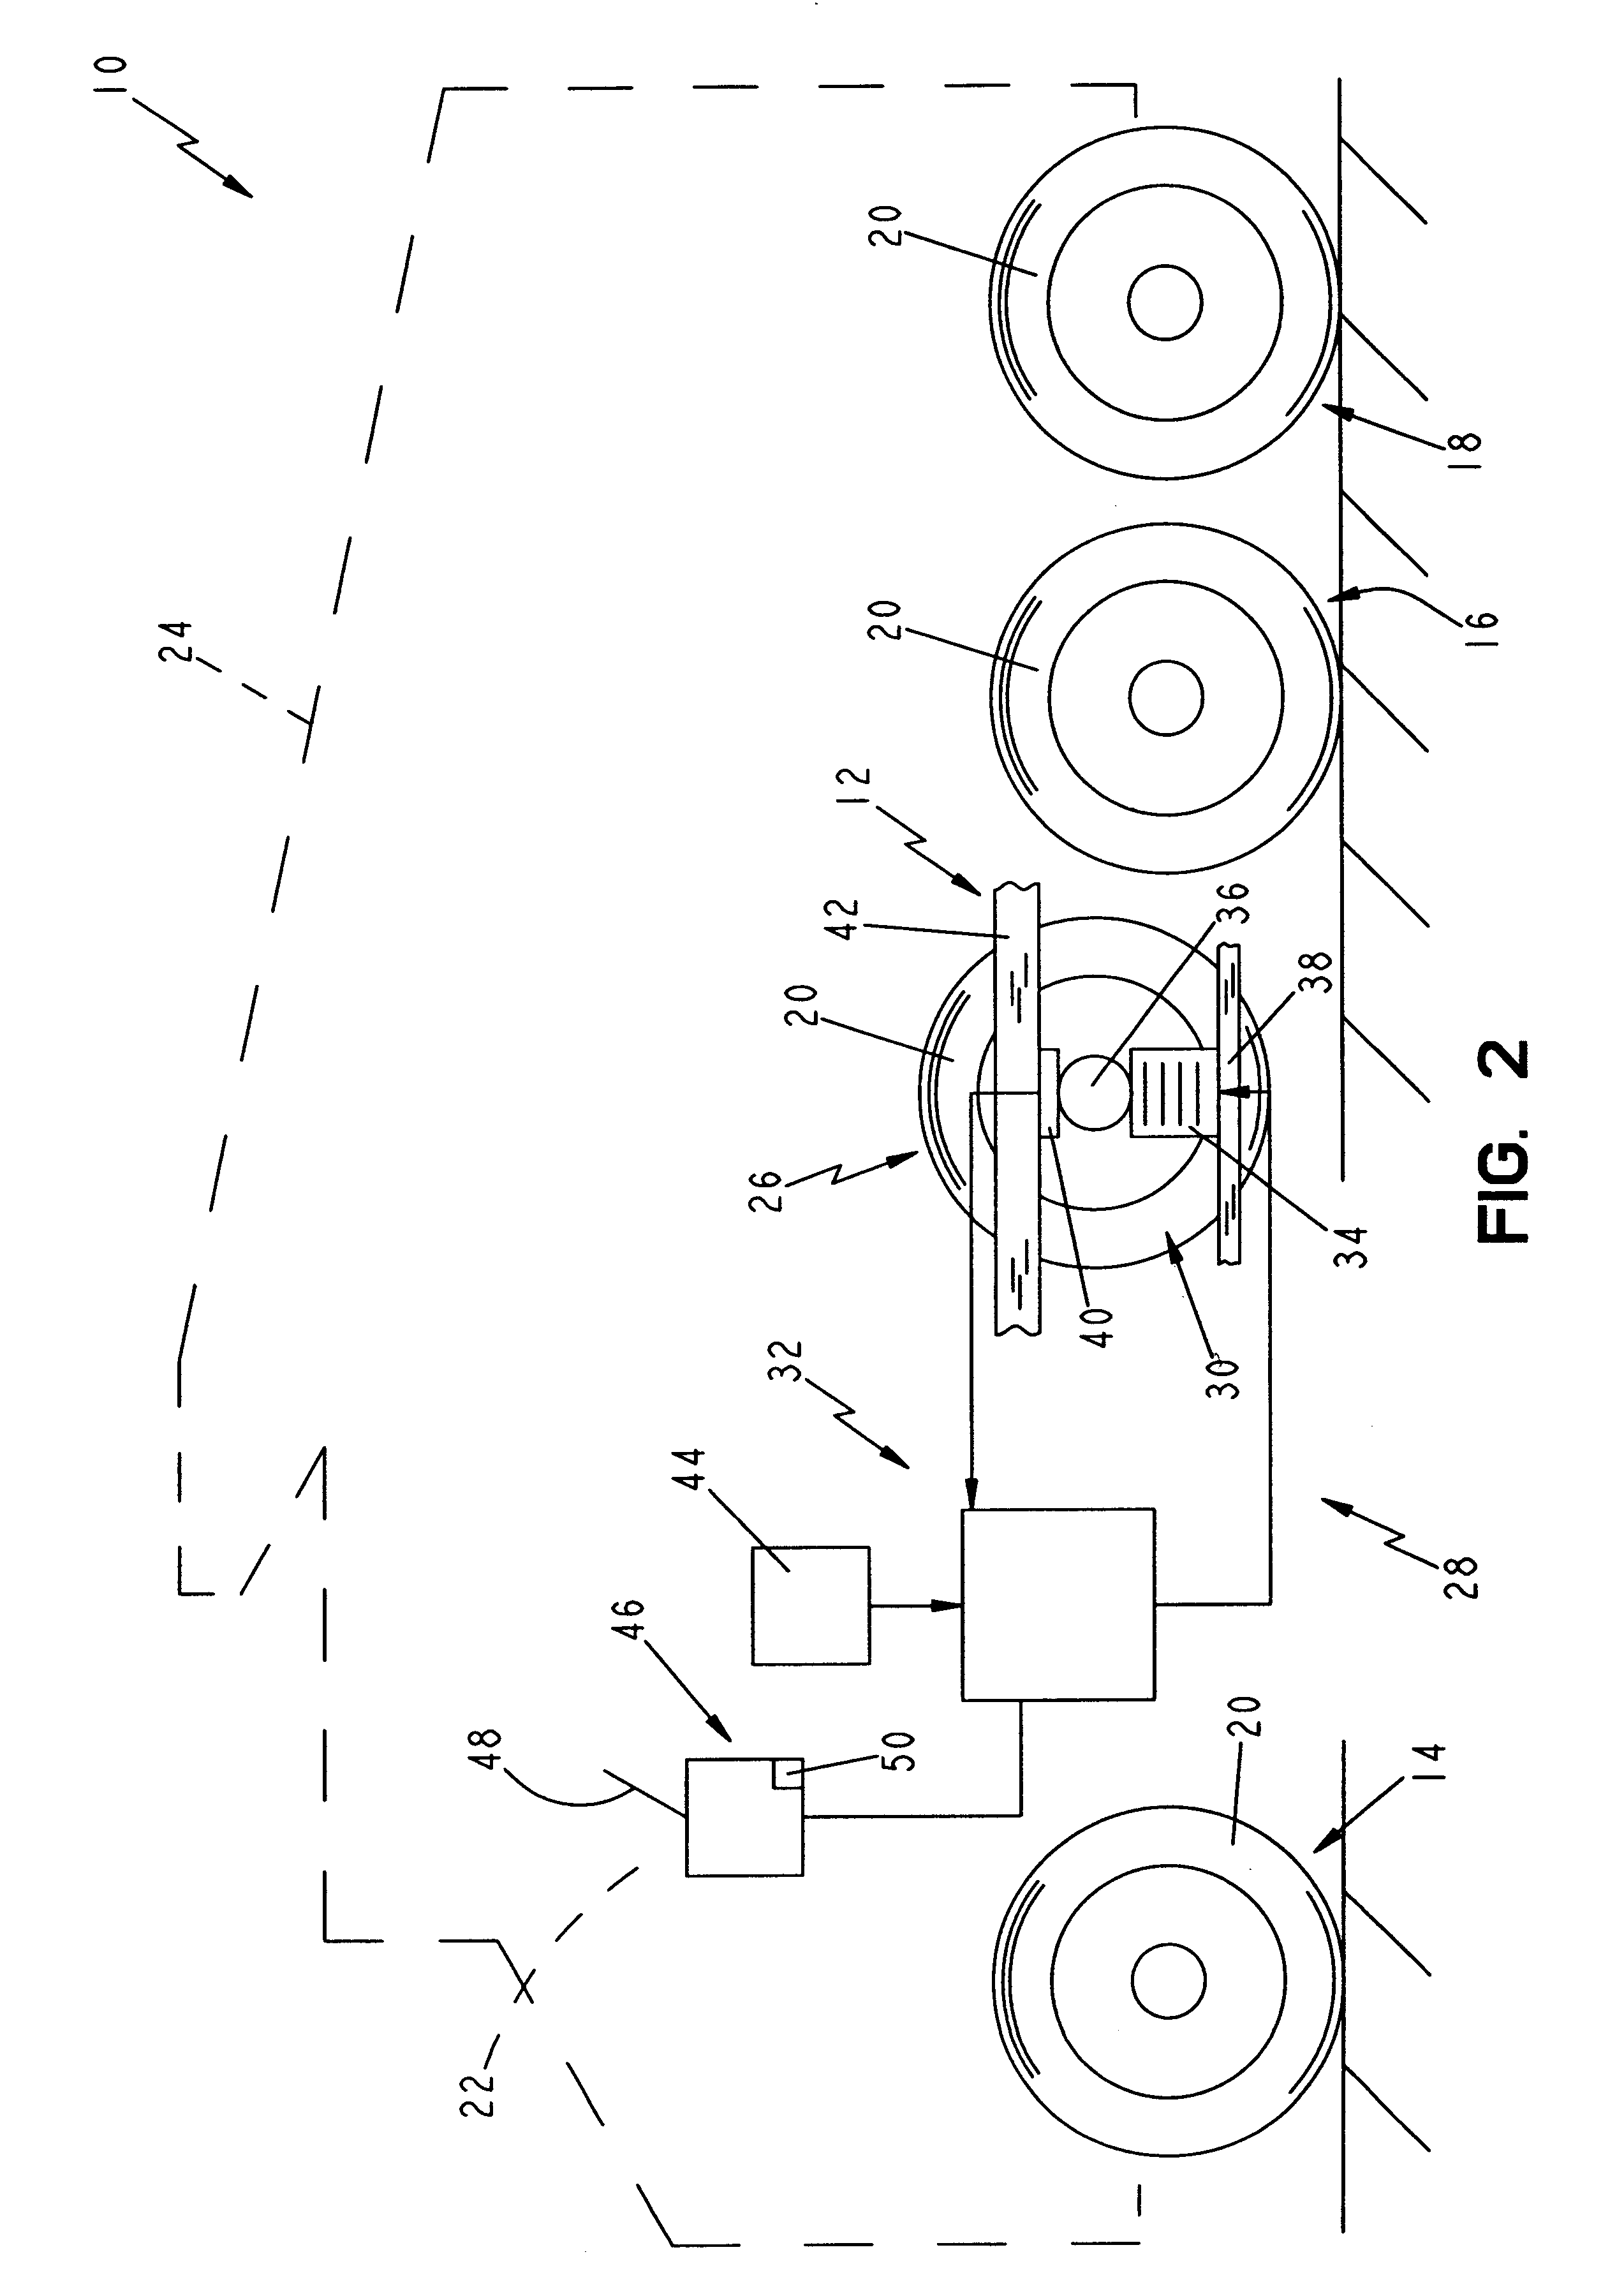 lift axle air control valve diagram  lift  free engine